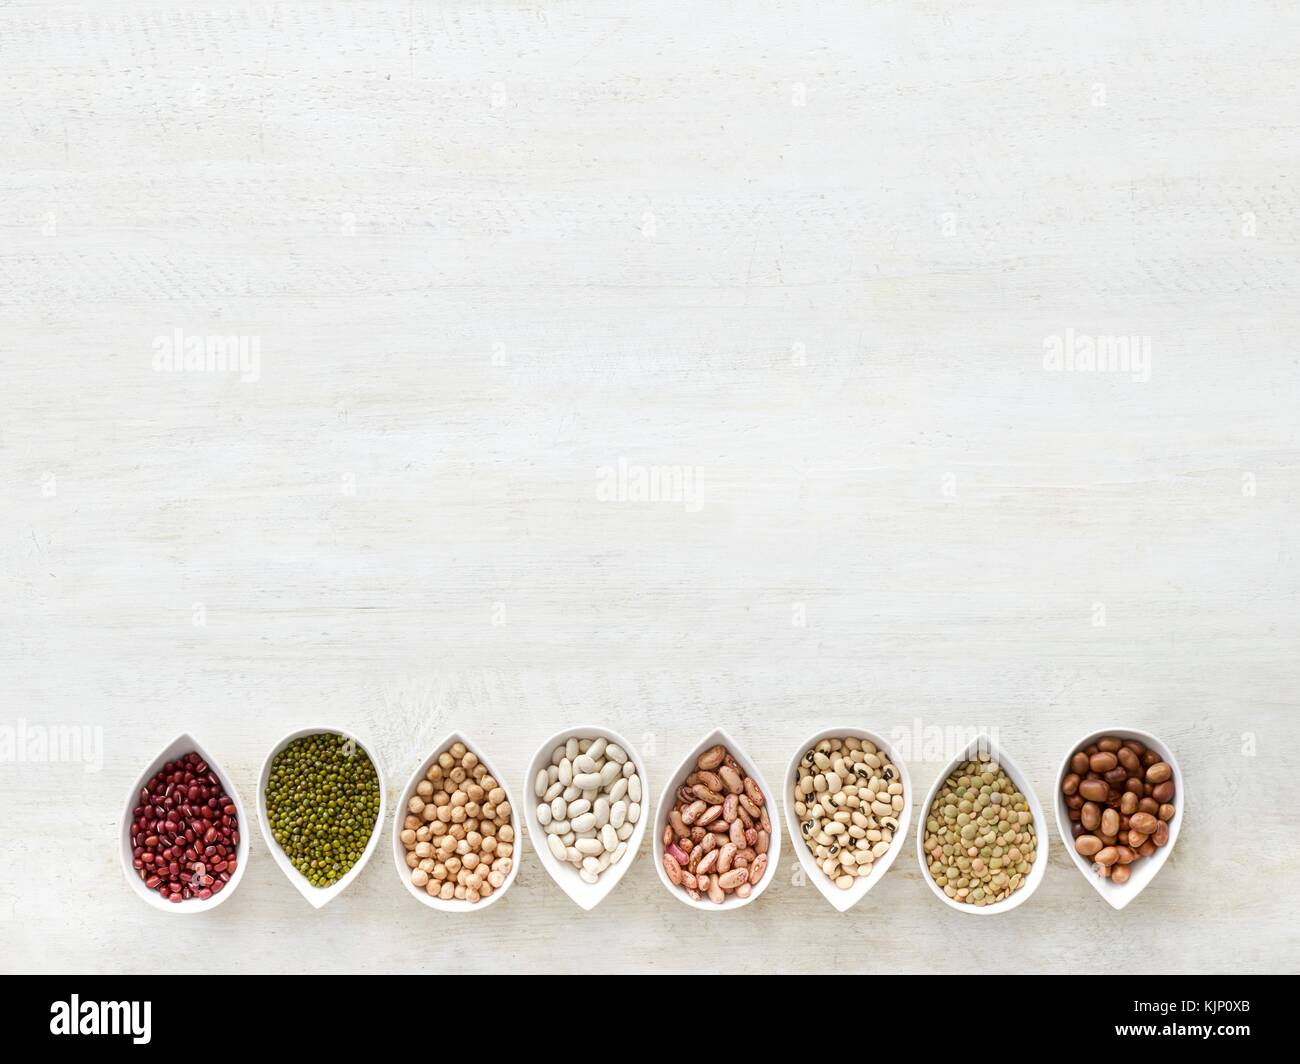 Pulses in tear shaped mini bowls, overhead view. - Stock Image